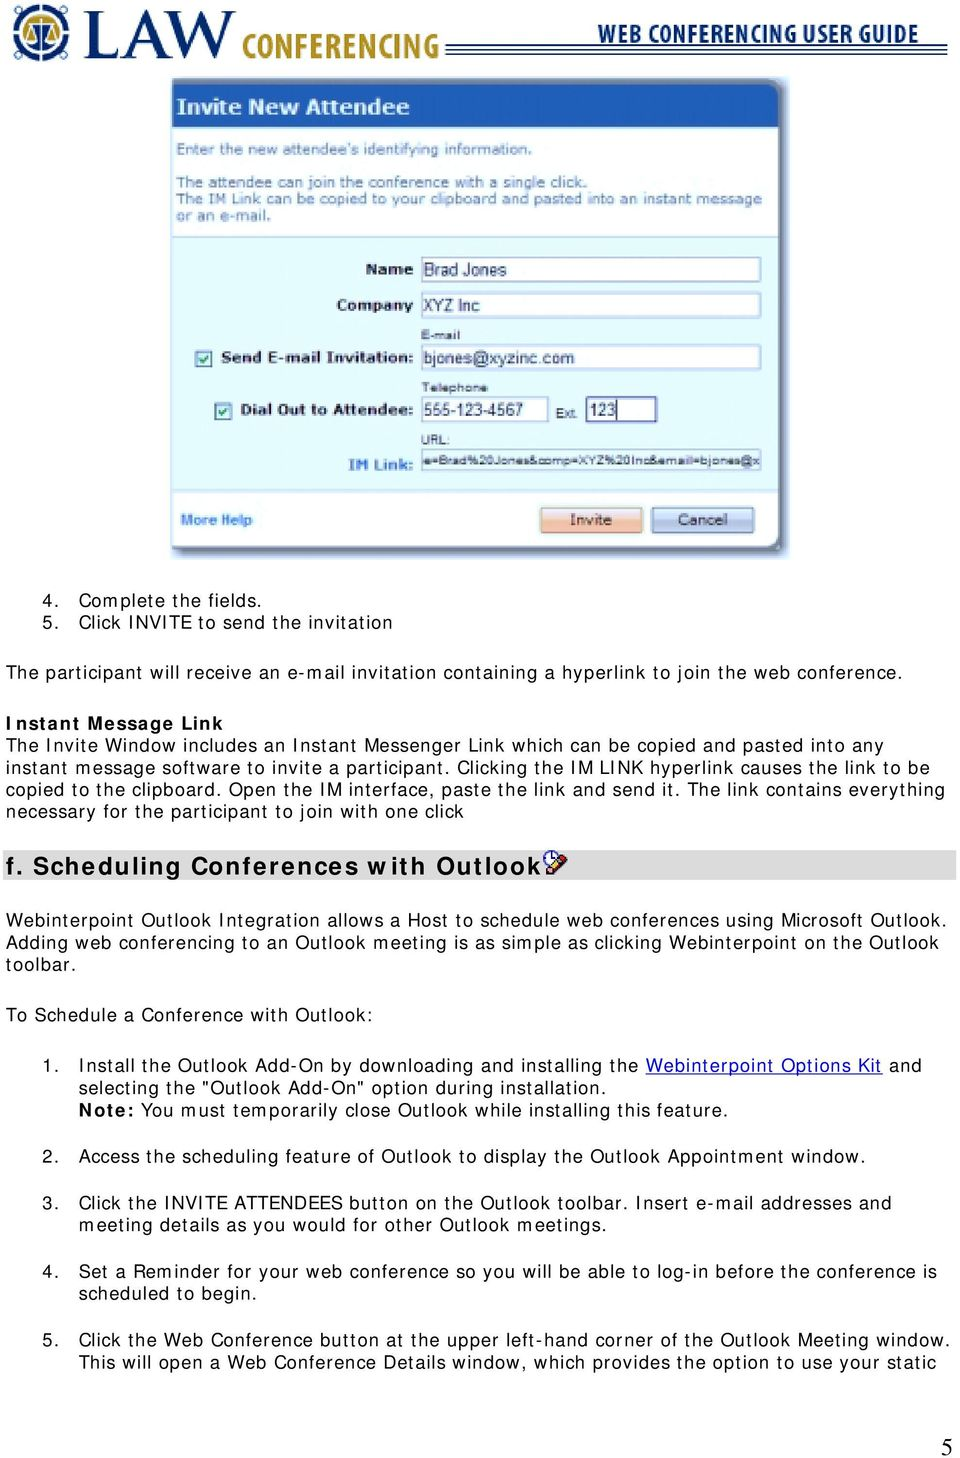 Law Conferencing uses the Webinterpoint 8 2 web conferencing